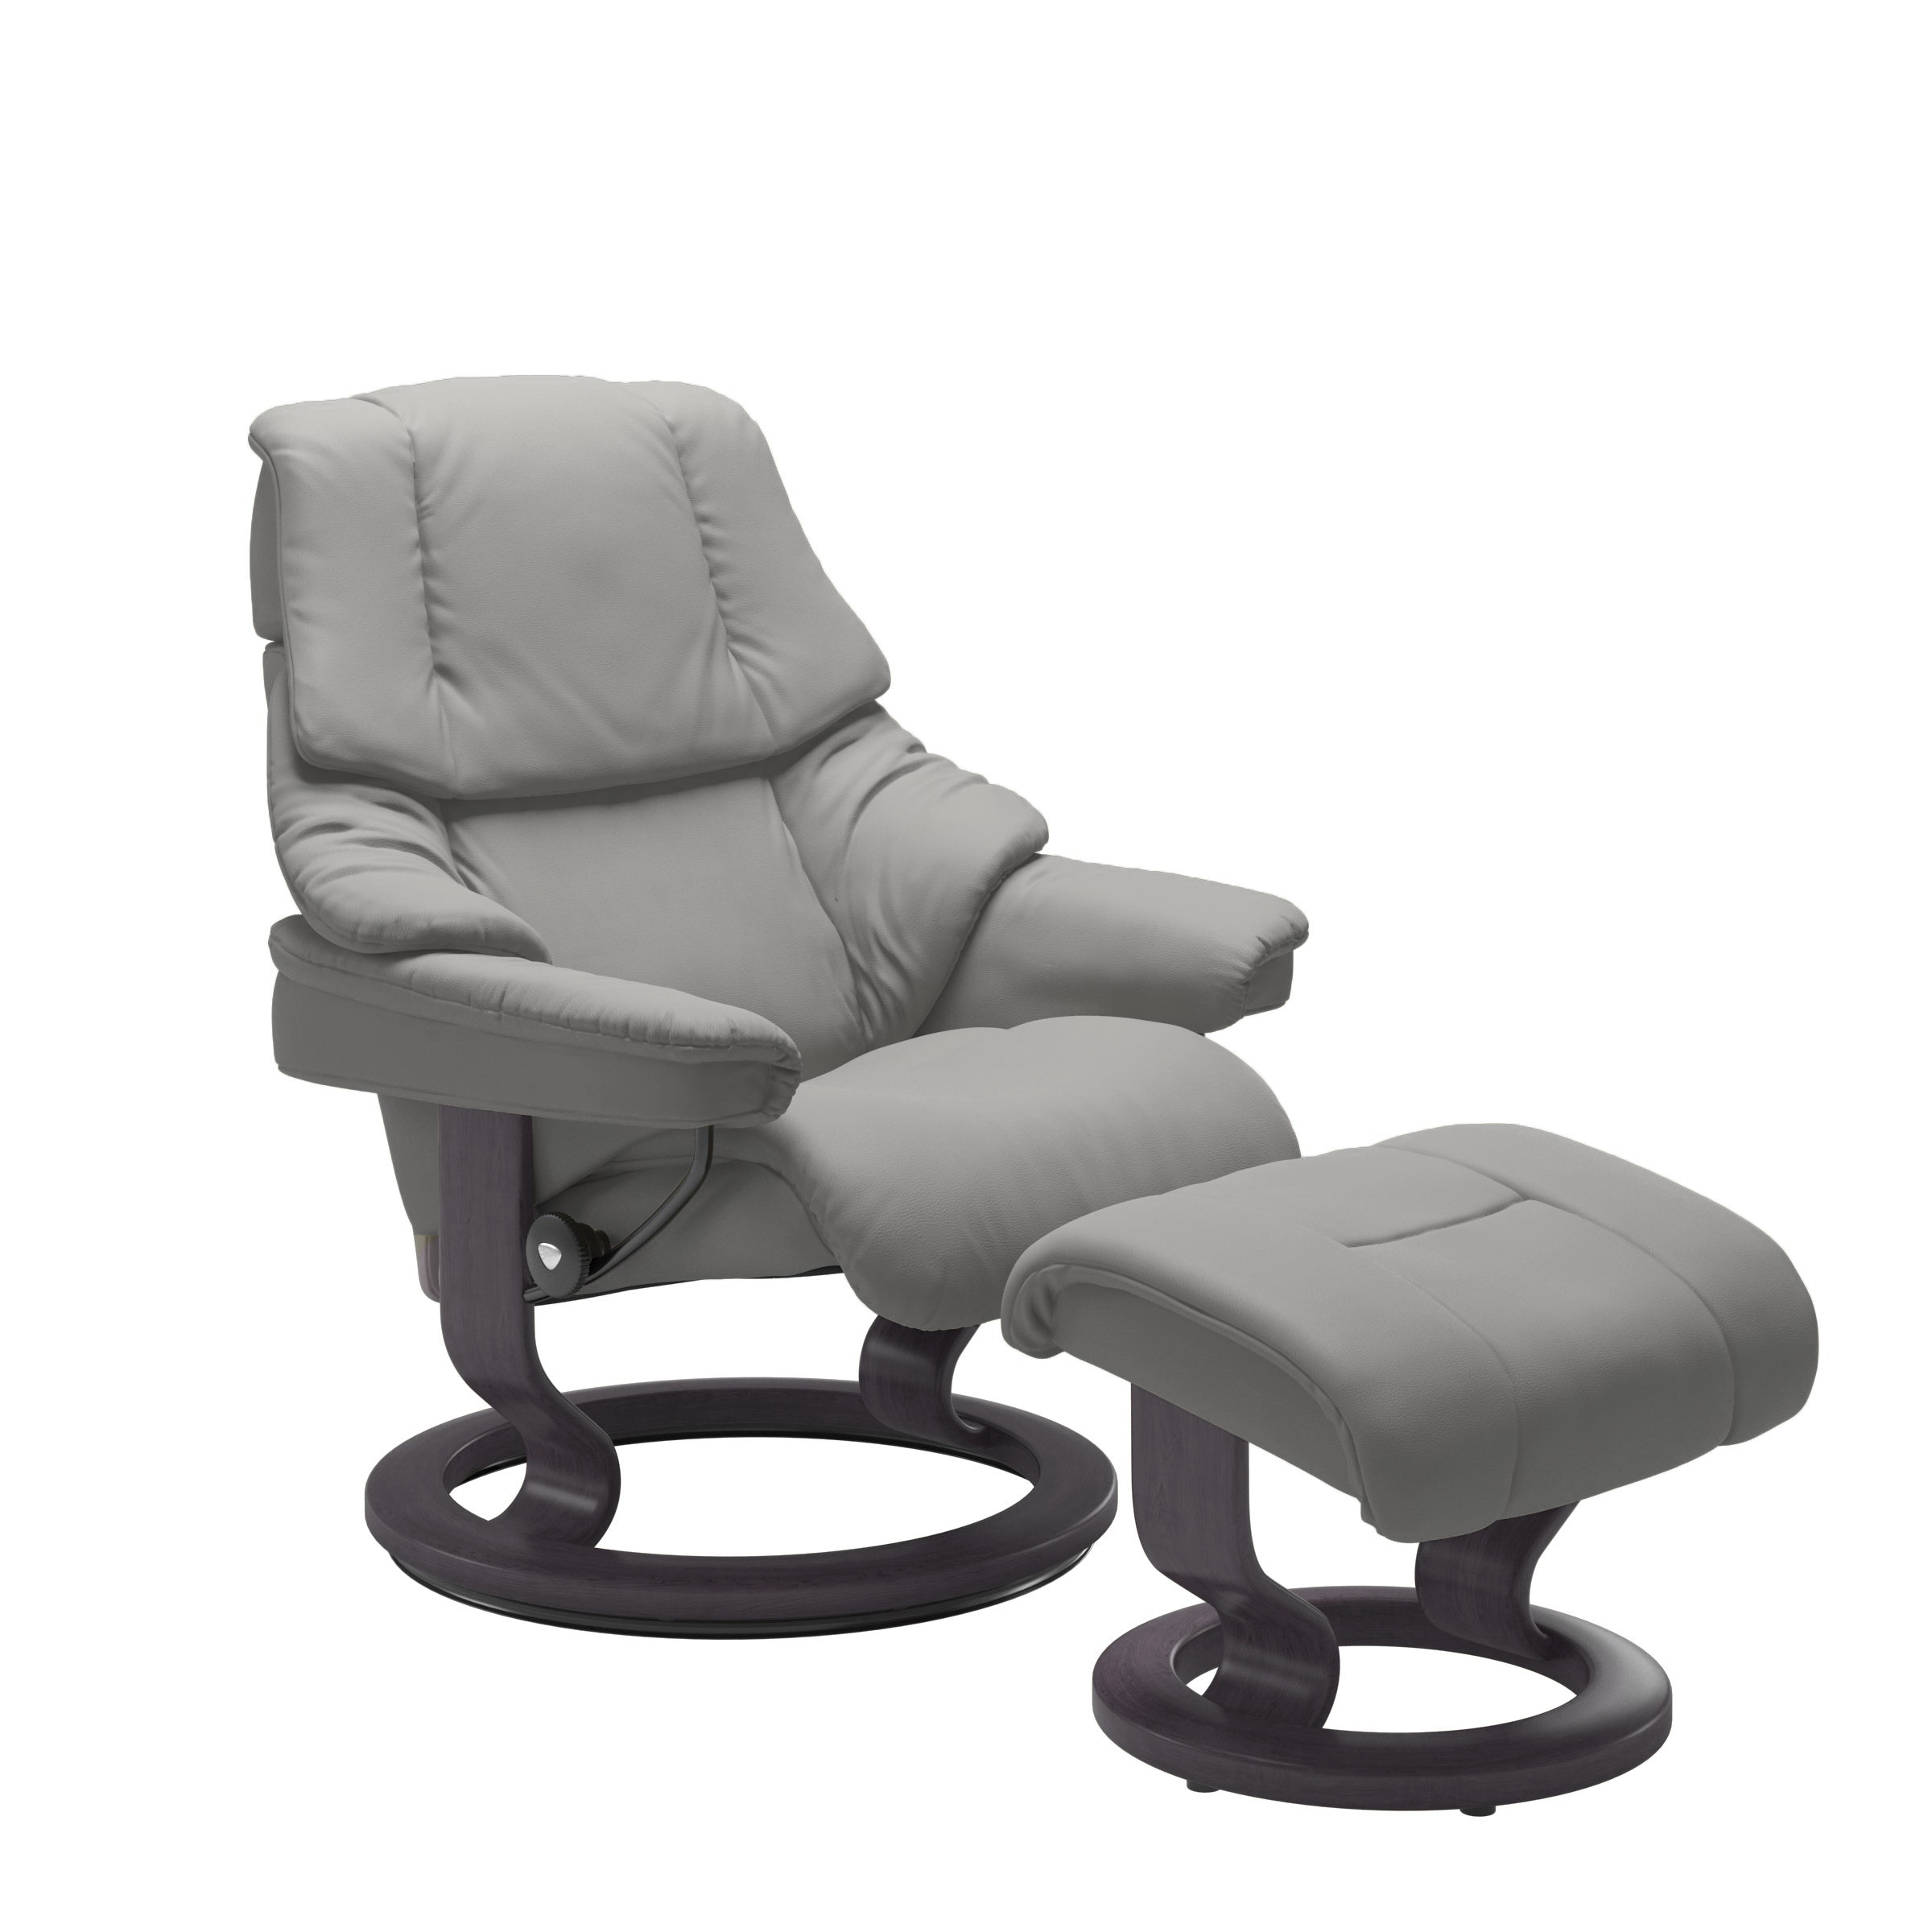 Stressless Reno Recliner with Footstool (Classic Base)